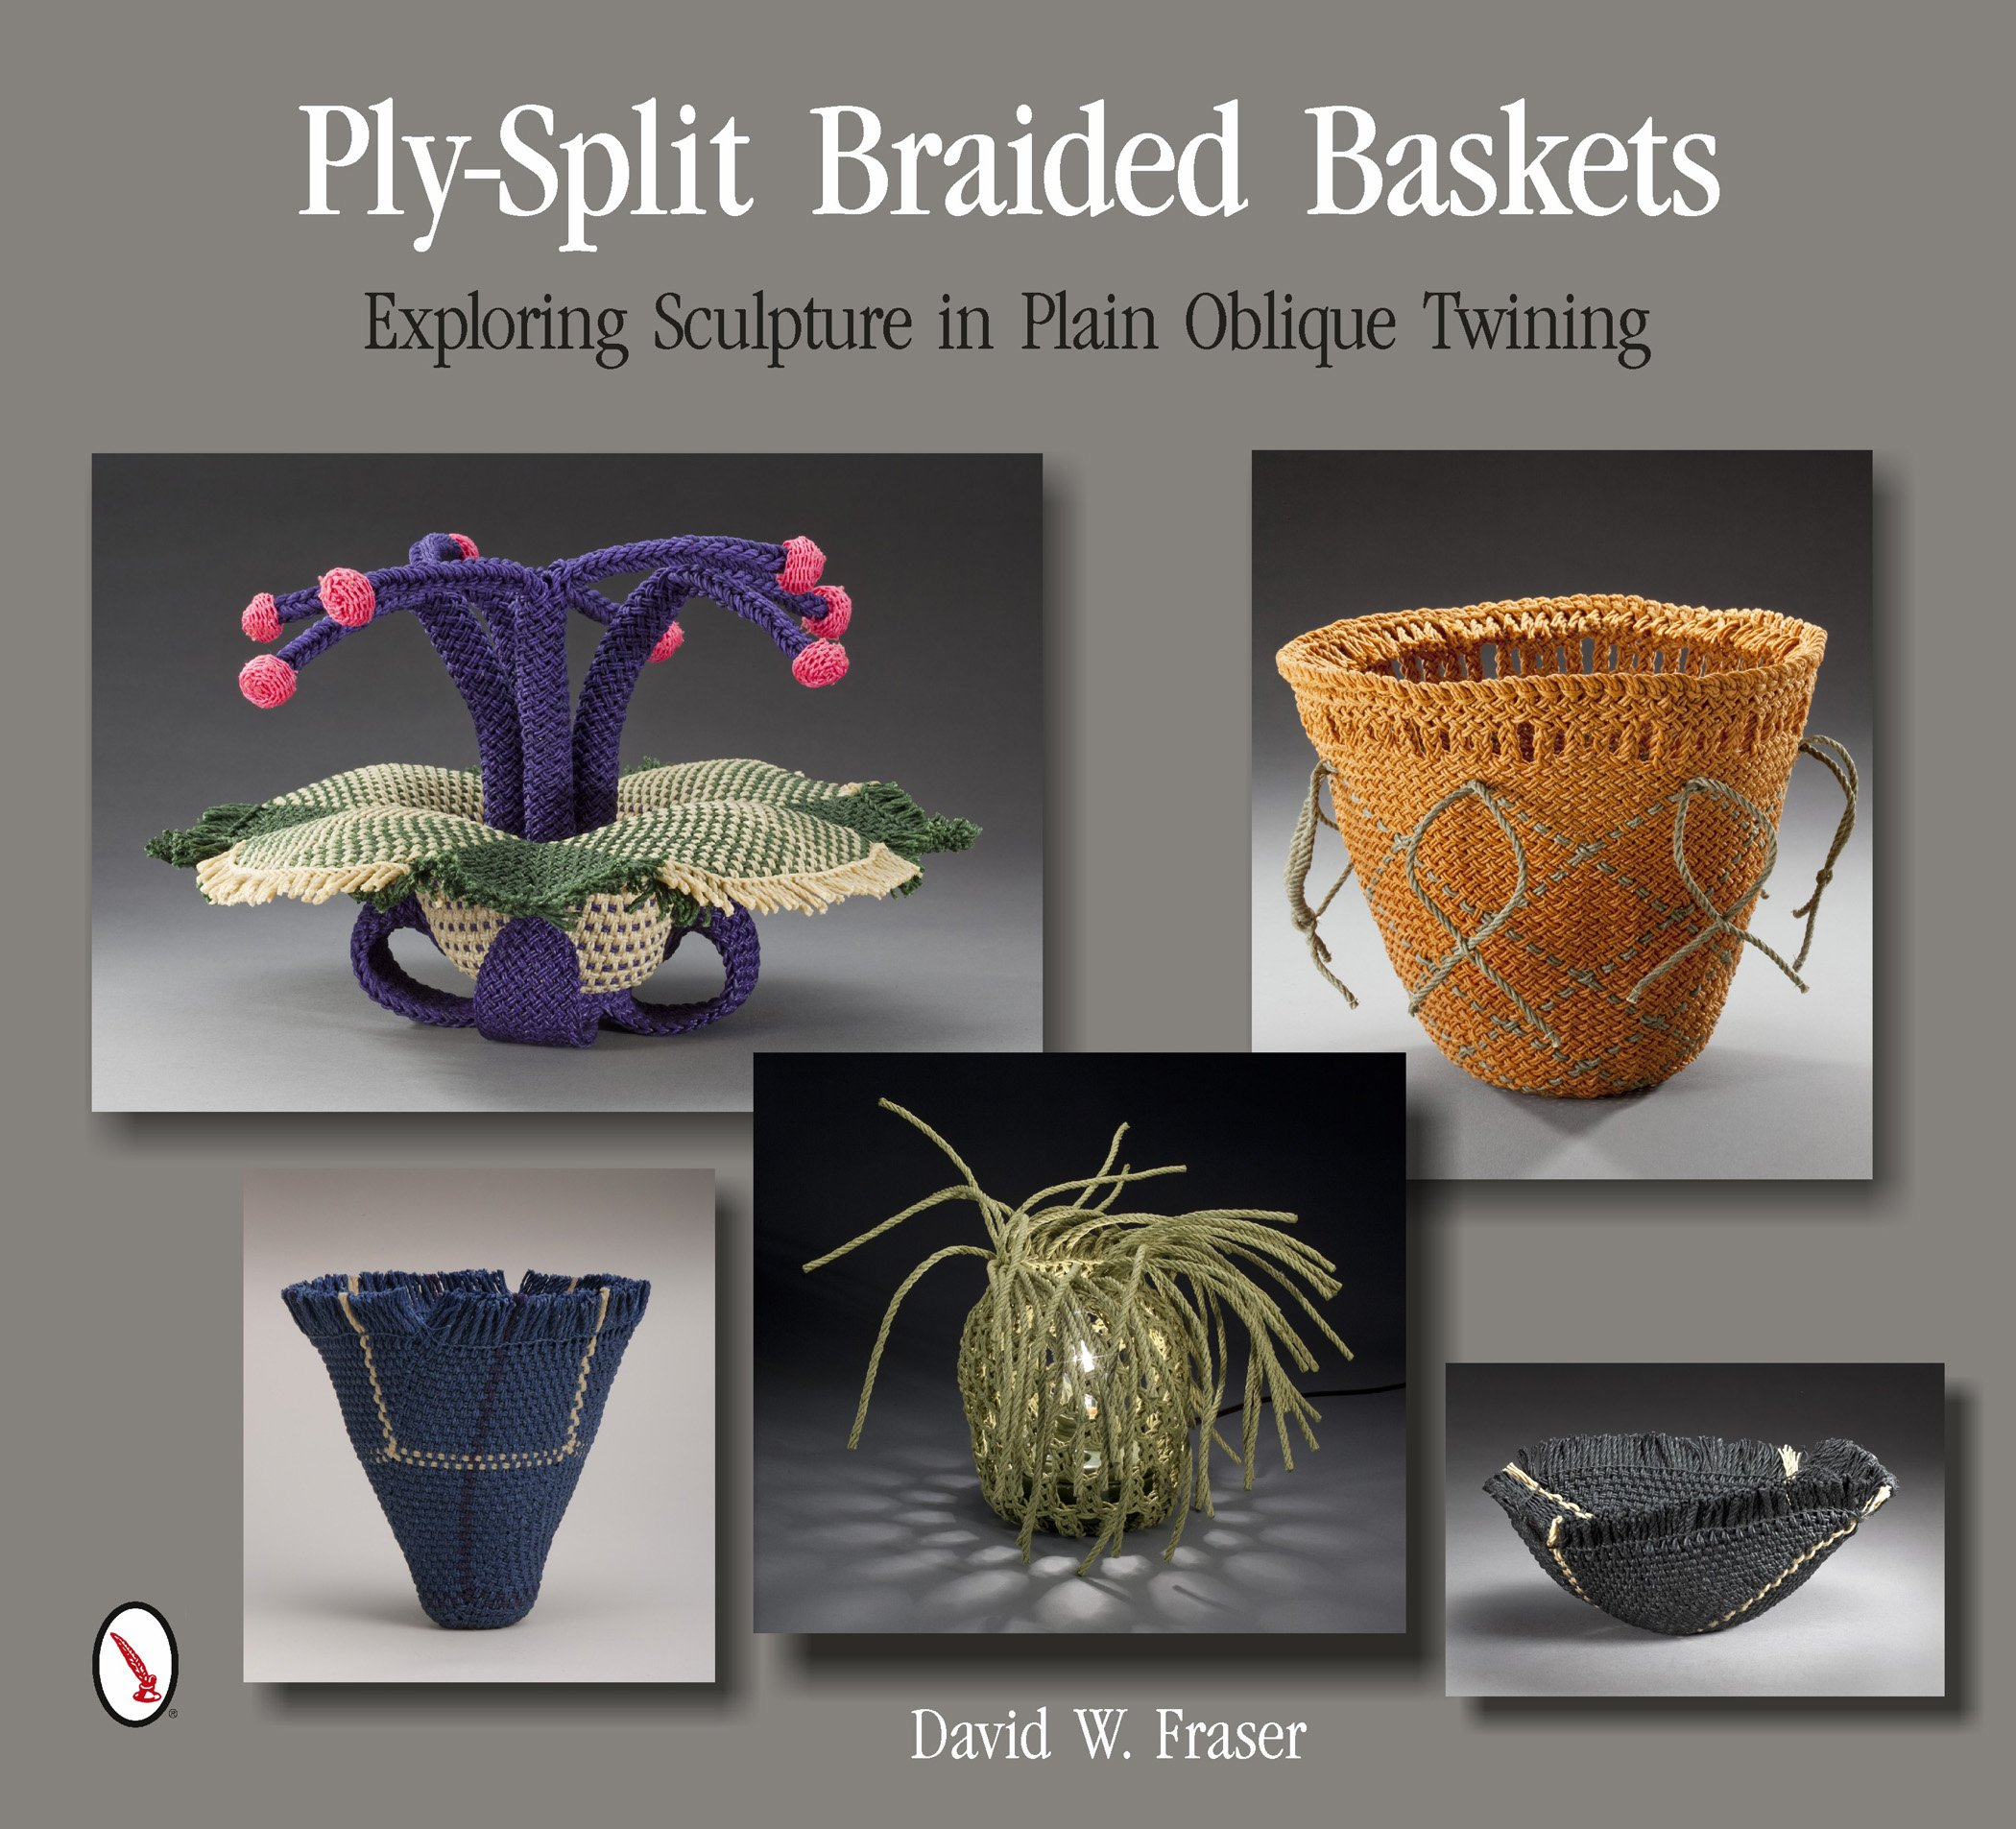 Ply-Split Braided Baskets: Exploring Sculpture in Plain Oblique Twining